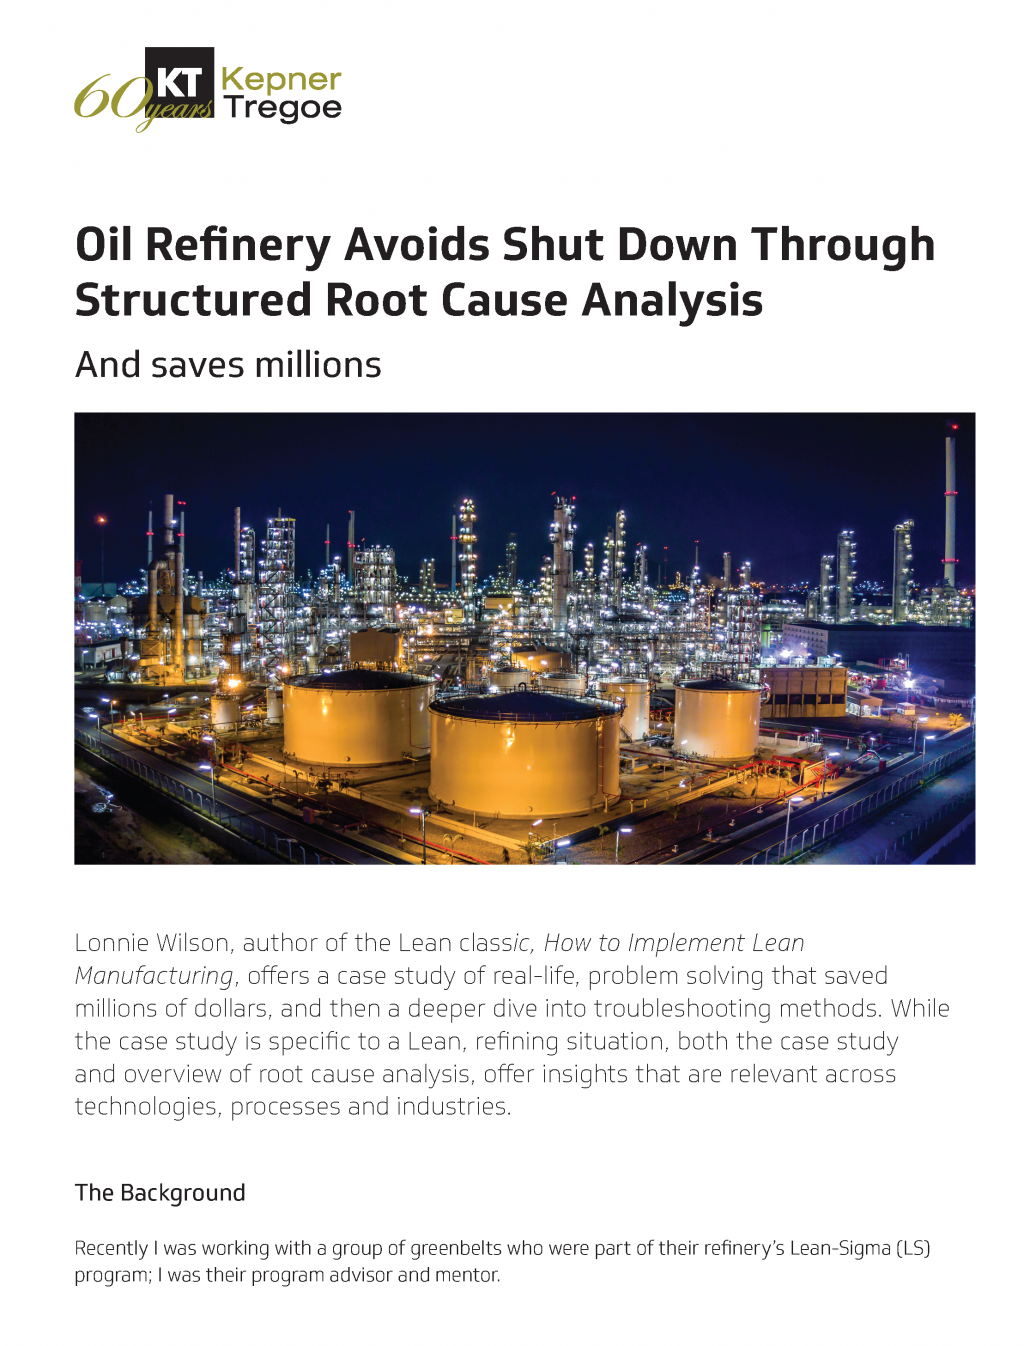 Oil Refinery Avoids Shut Down Through Structured Root Cause Analysis